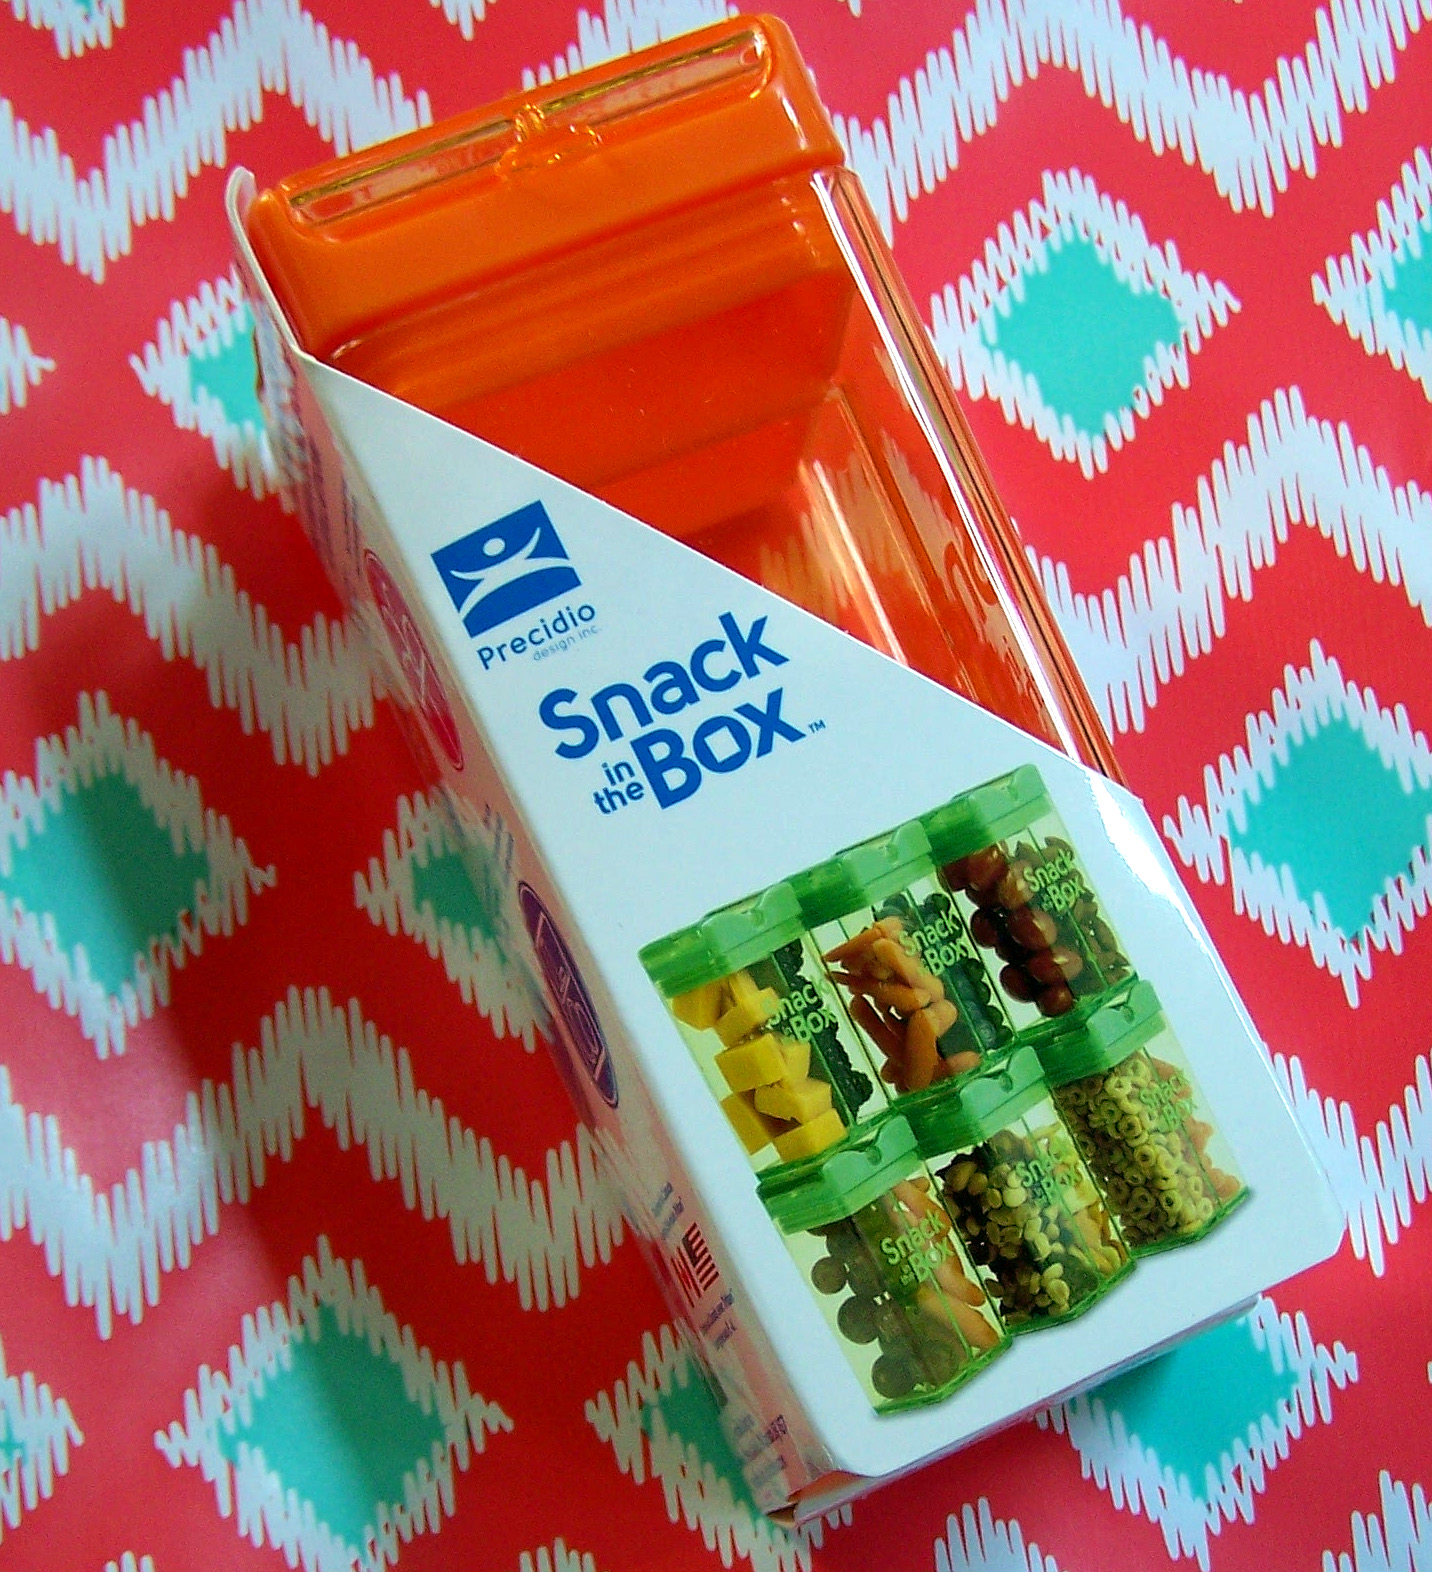 reviews back to school cooking kitchen home kids snacks parenting food food storage children school snack in the box